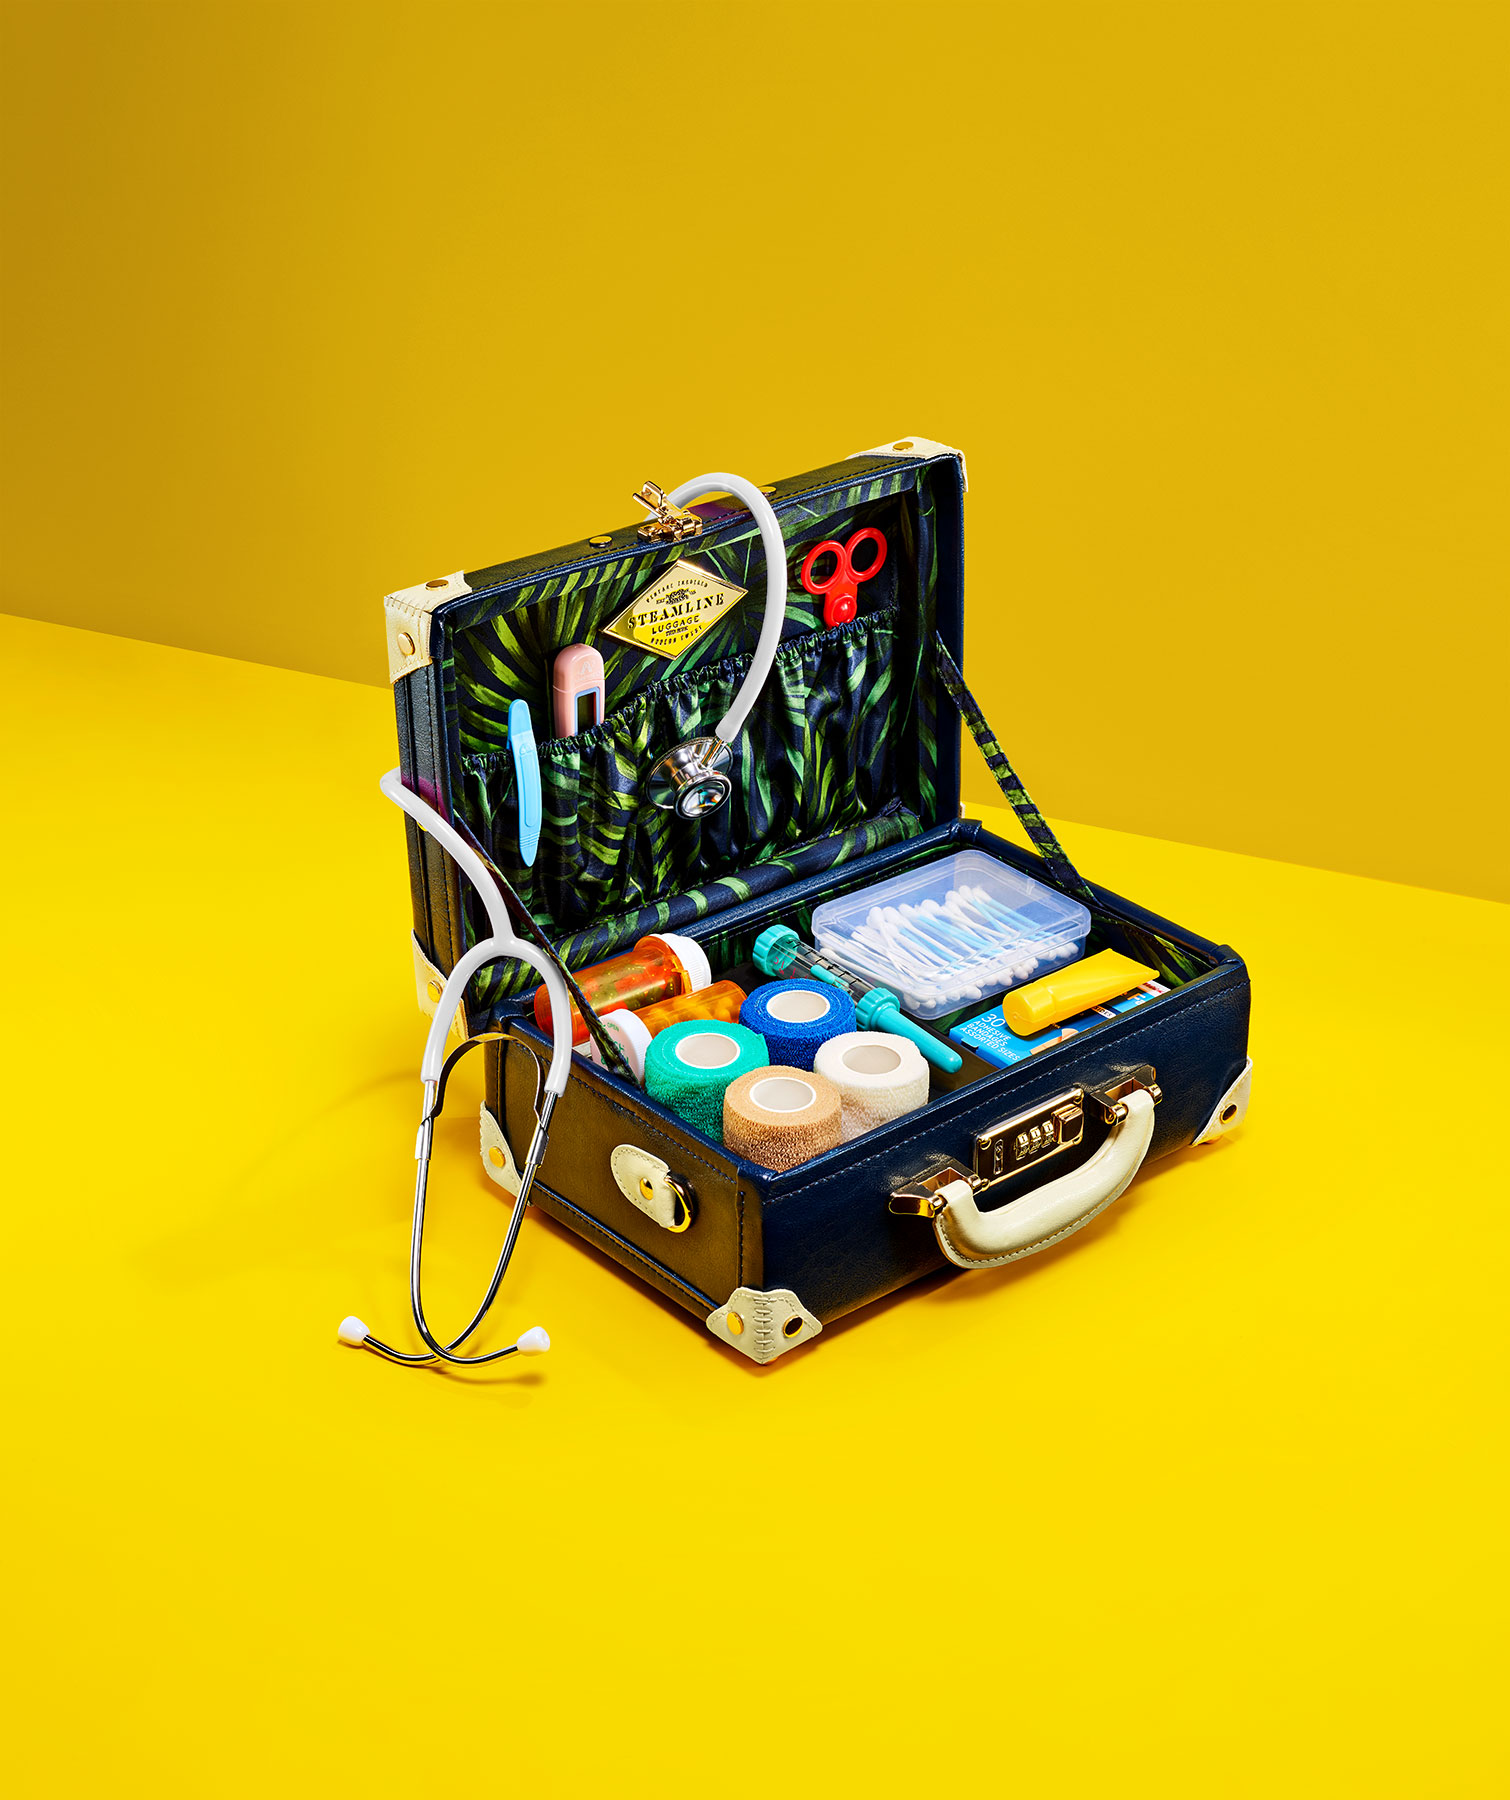 Suitcase with first-aid supplies